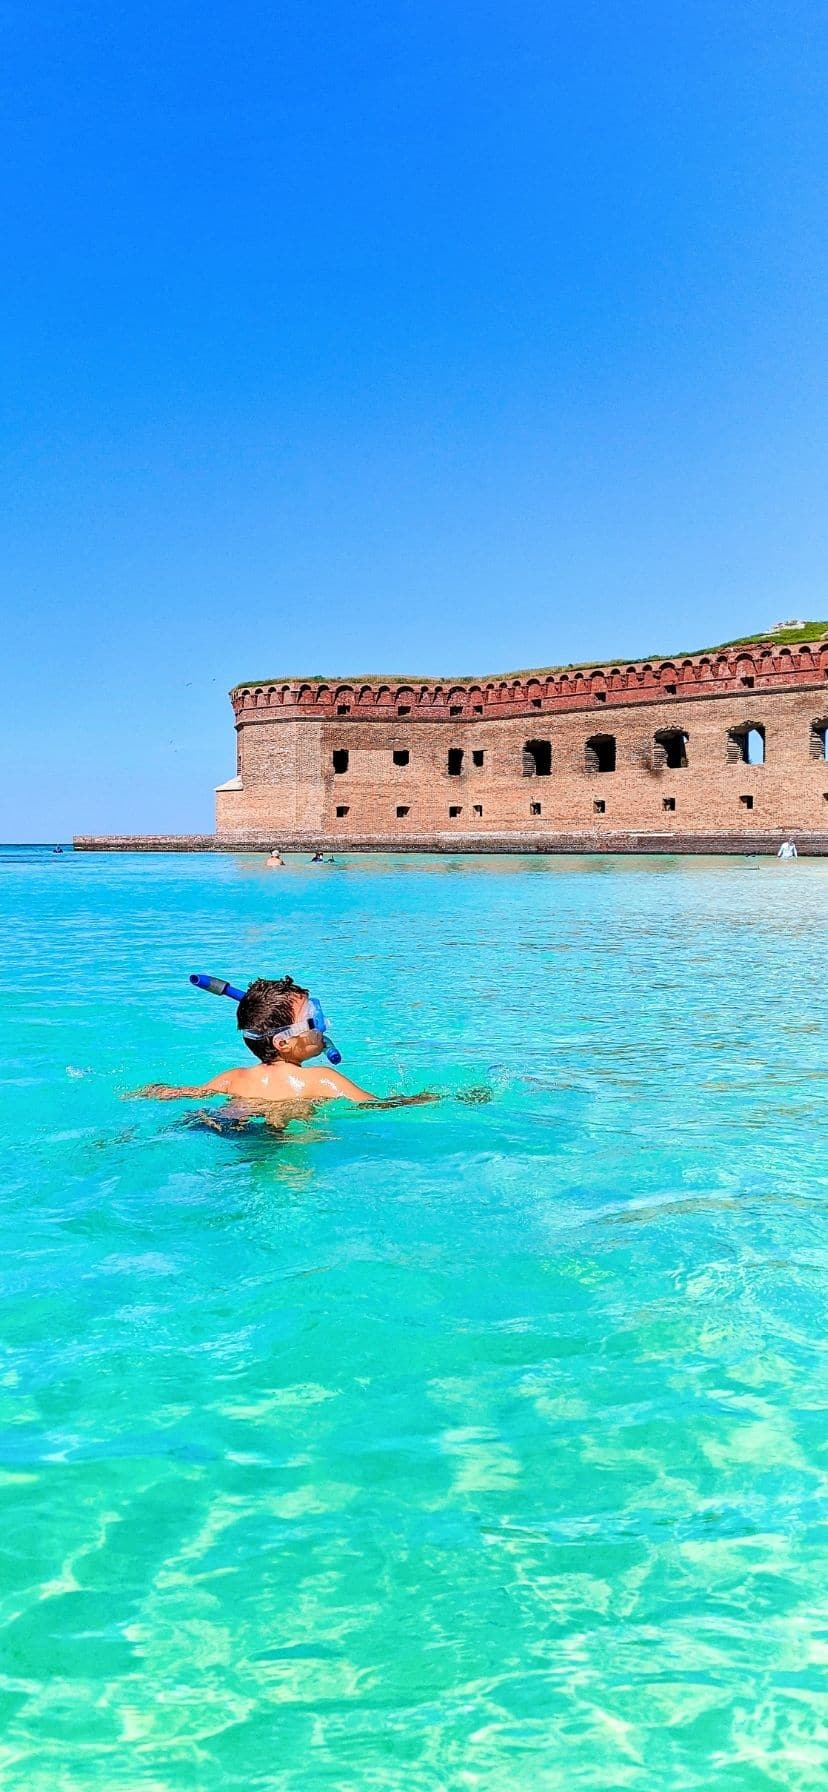 Snorkeling in crystal clear water at Fort Jefferson, Dry Tortugas National Park, Key West Florida